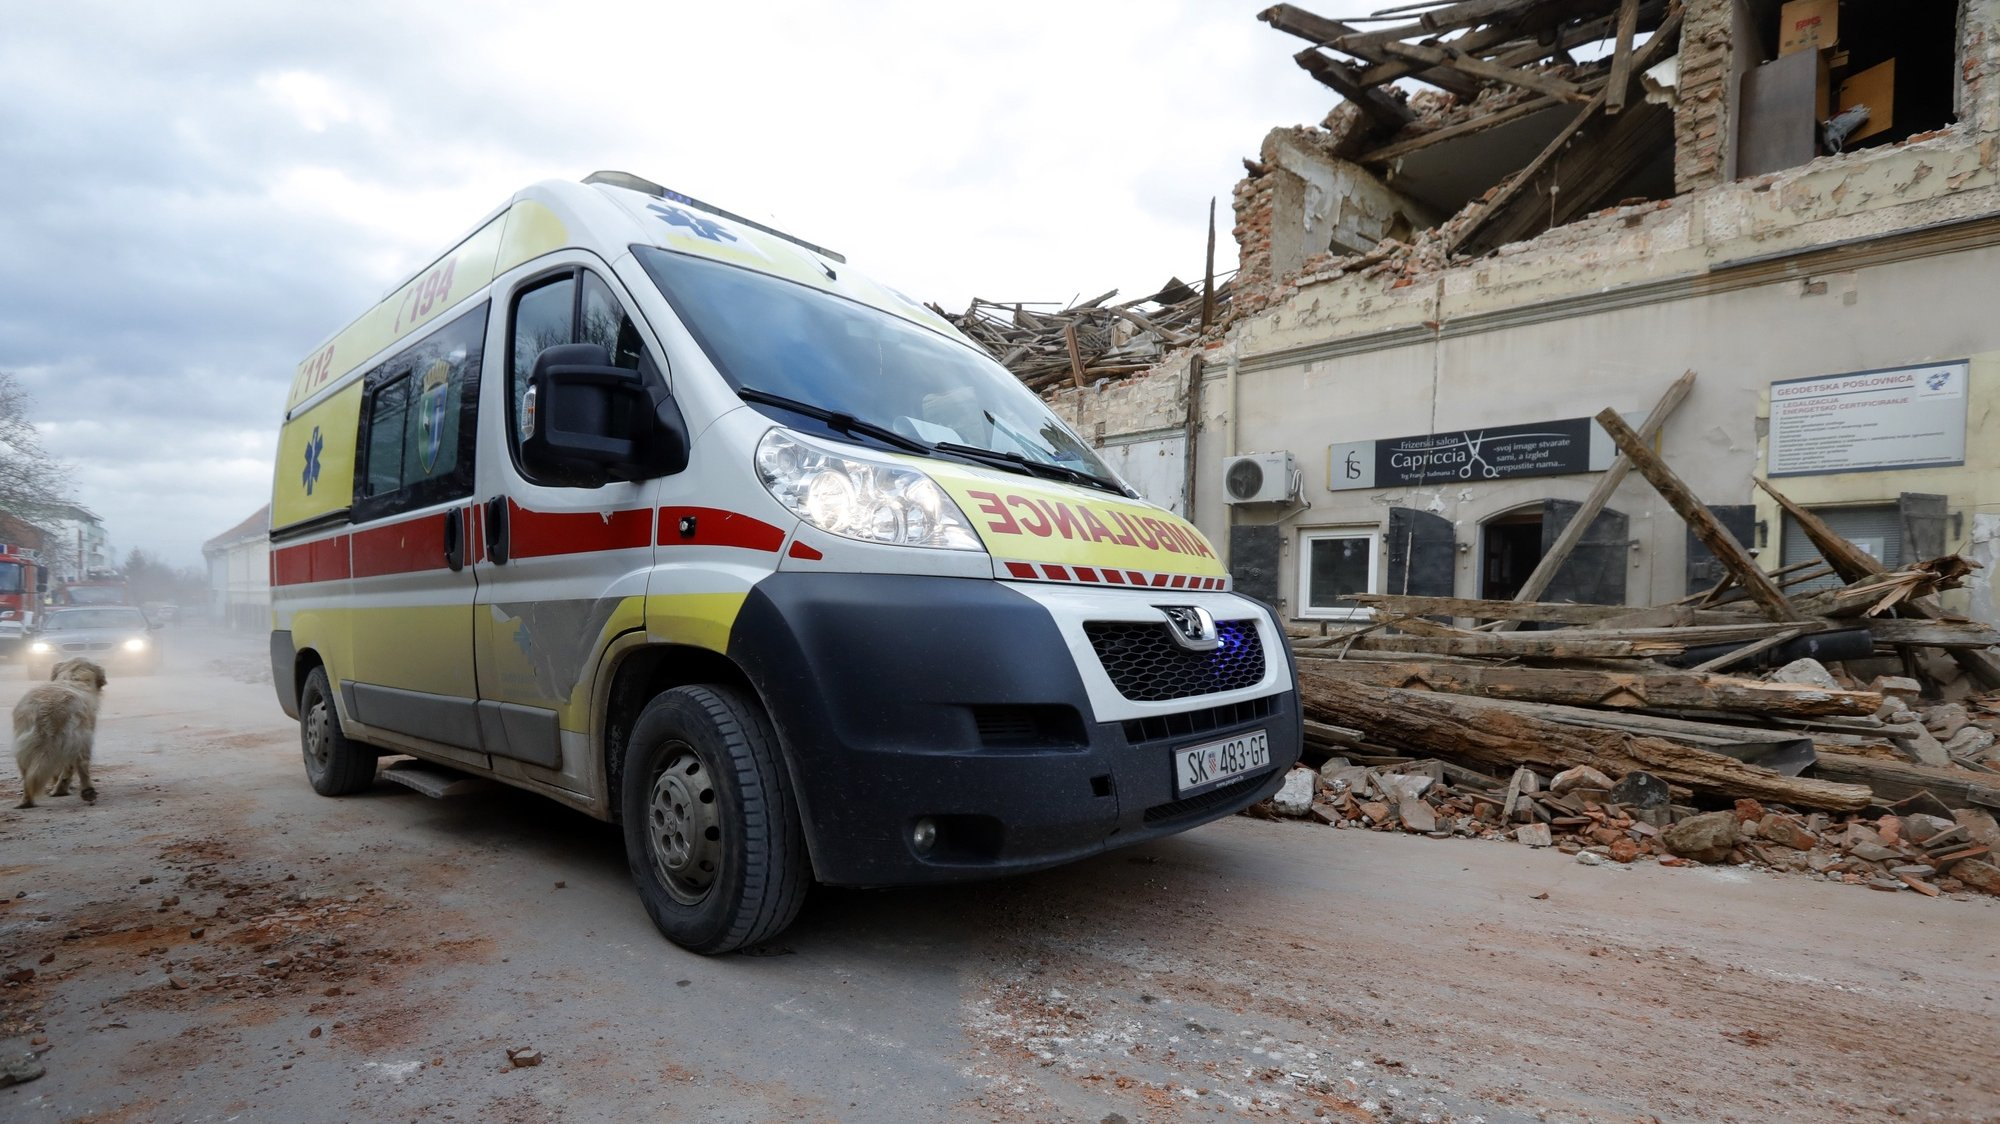 epa08909780 An ambulance drives past buildings damaged in an earthquake in Petrinja, Croatia, 29 December 2020. A 6.4 magnitude earthquake struck around 3km west south west of the town with reports of many injuries and at least one death.  EPA/ANTONIO BAT